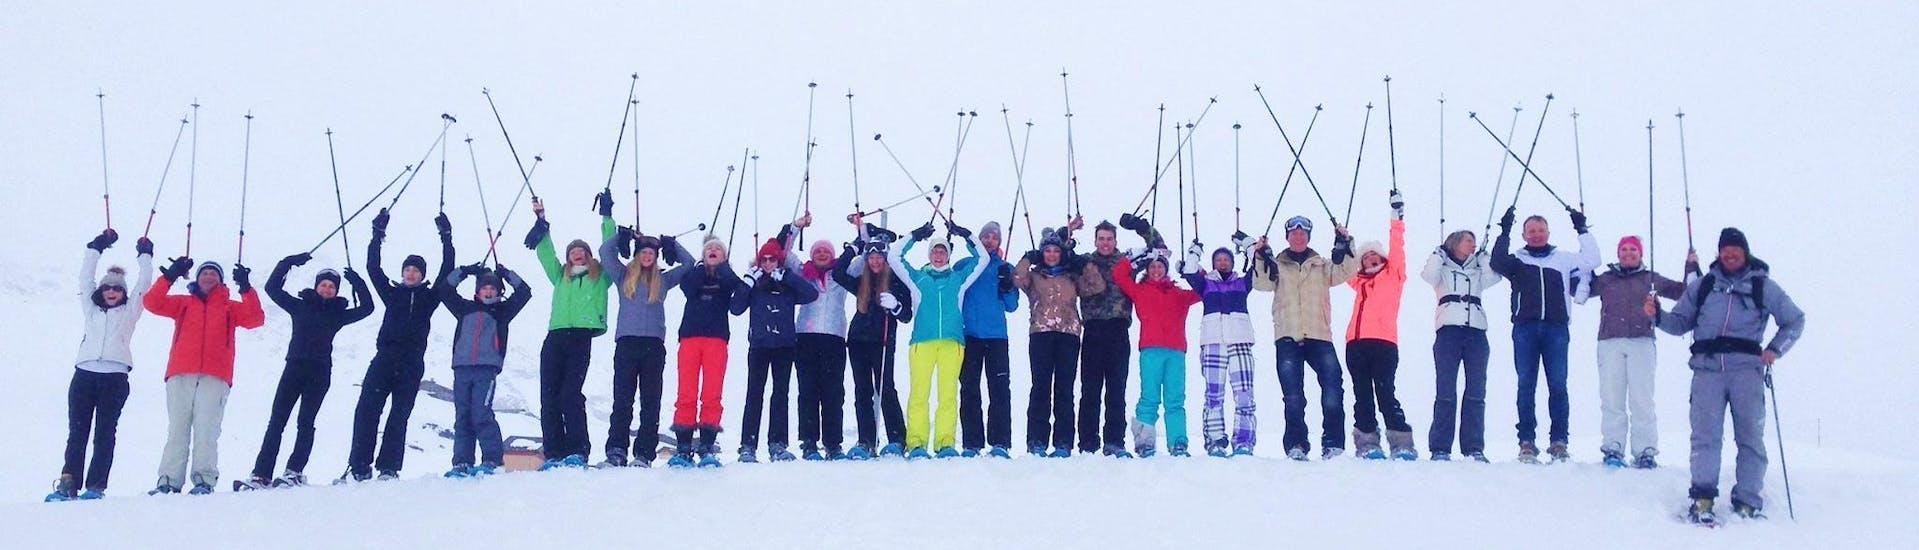 Skiers are standing next to each other at the top of a slope with their ski poles in the air, waiting to start their Adult Ski Lessons (from 14 y.) for All Levels with the ski school Evolution 2 Val Thorens.